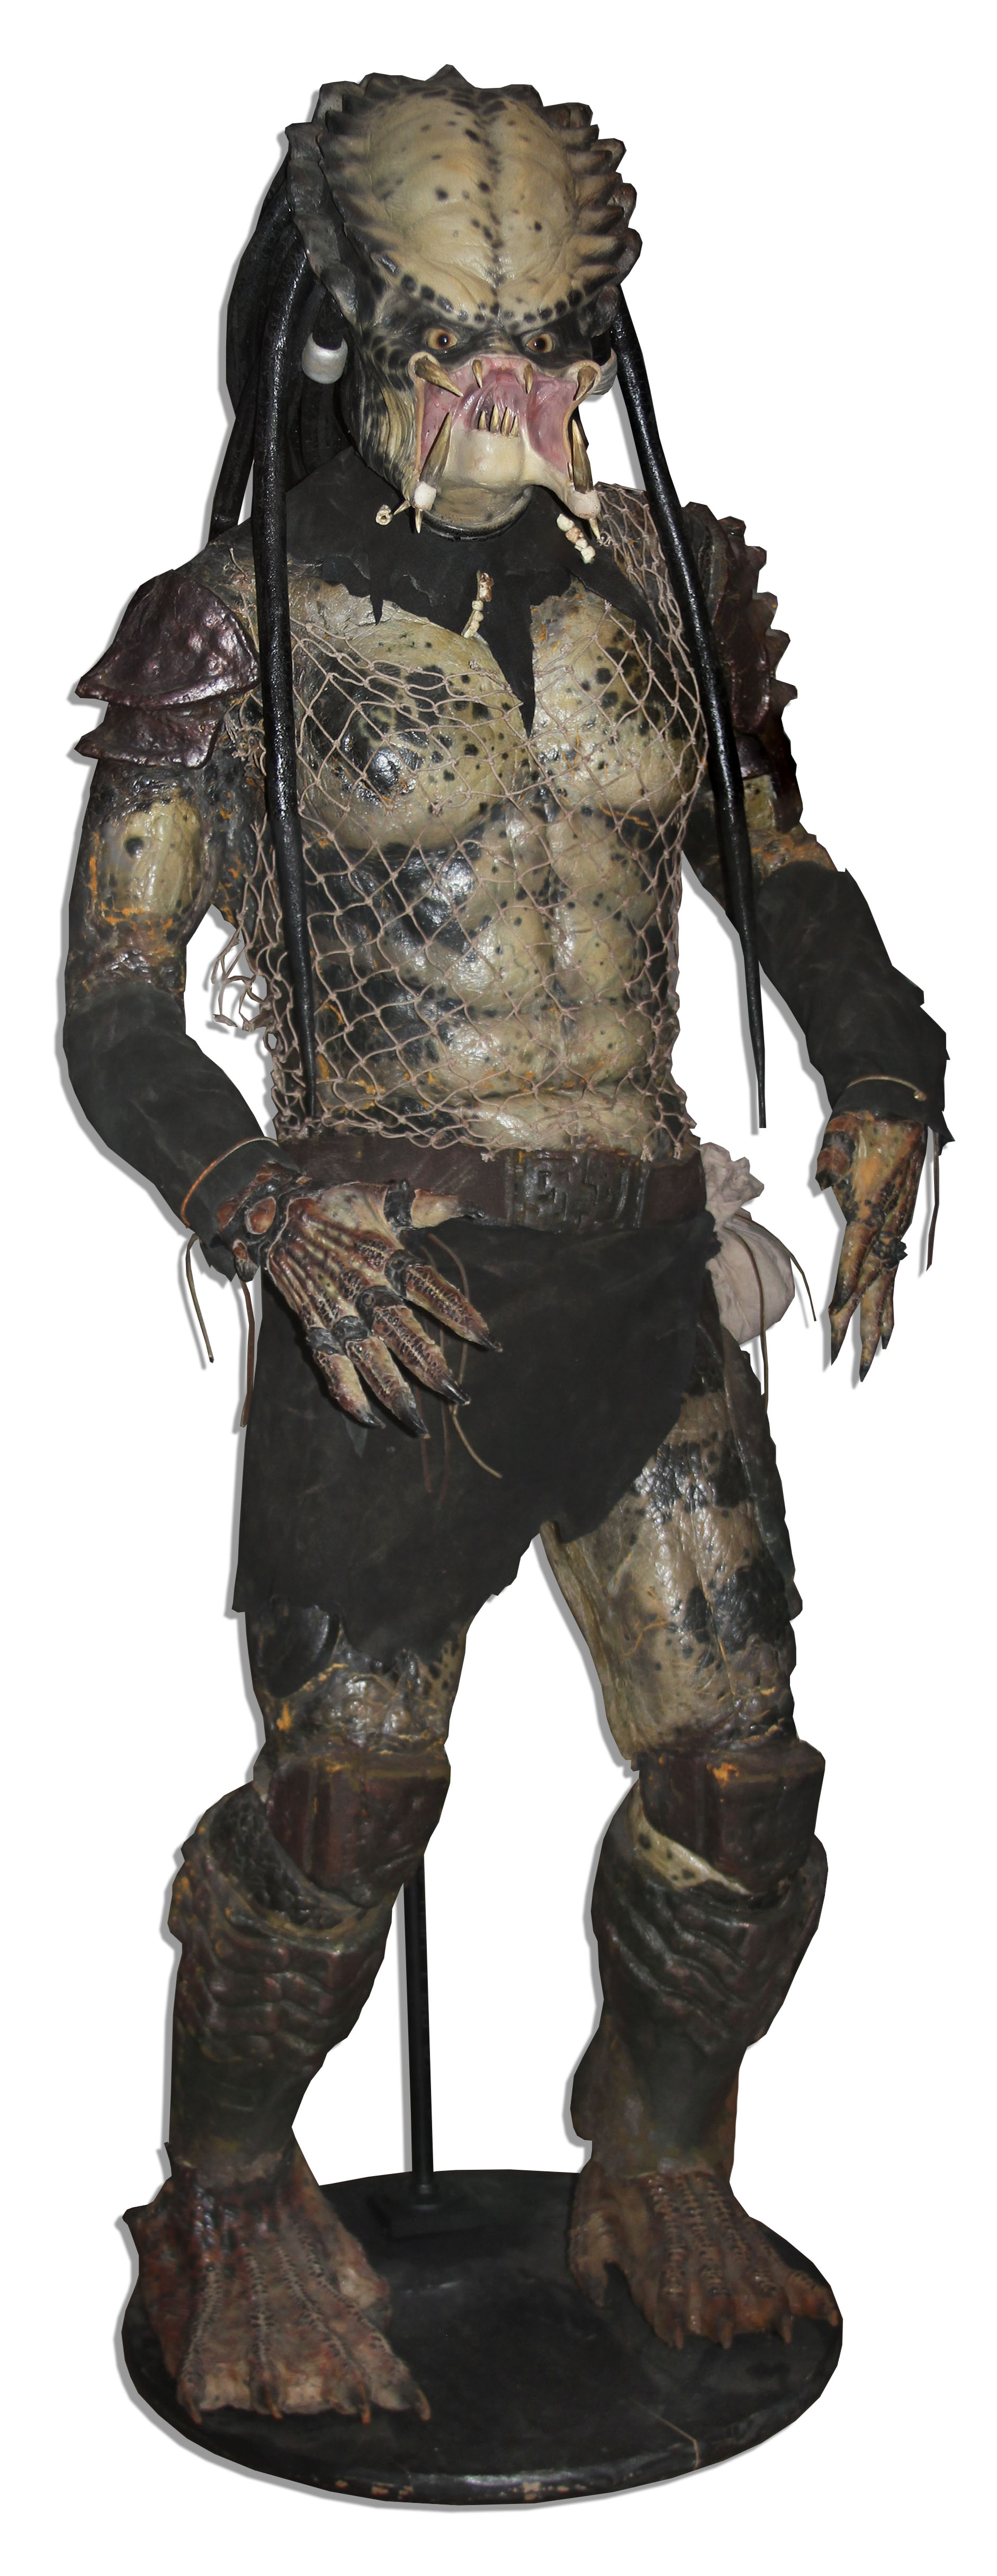 Screen Used Full Size u0027u0027Hippie Predatoru0027u0027 Costume Suit From u0027u0027Predator ...  sc 1 st  Nate D Sanders & Lot Detail - Screen Used Full Size u0027u0027Hippie Predatoru0027u0027 Costume Suit ...